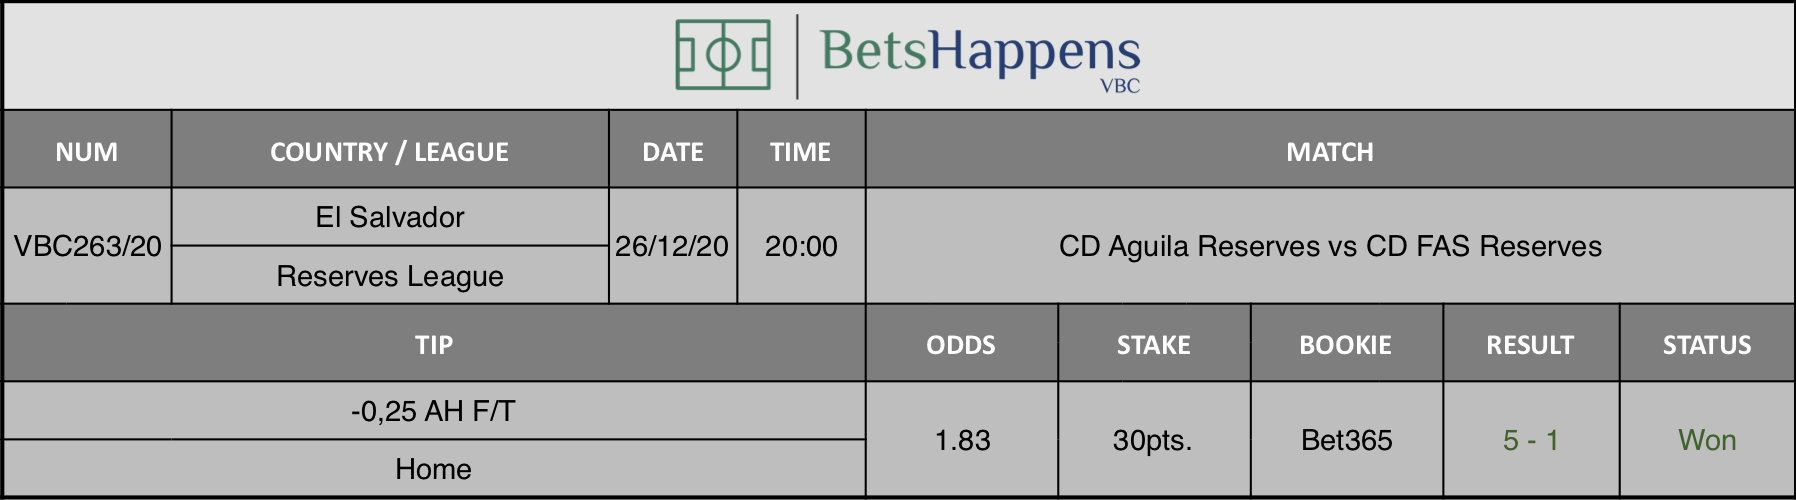 Results of our tip for the CD Aguila Reserves vs CD FAS Reserves match where -0,25 AH F/T Home is recommended.